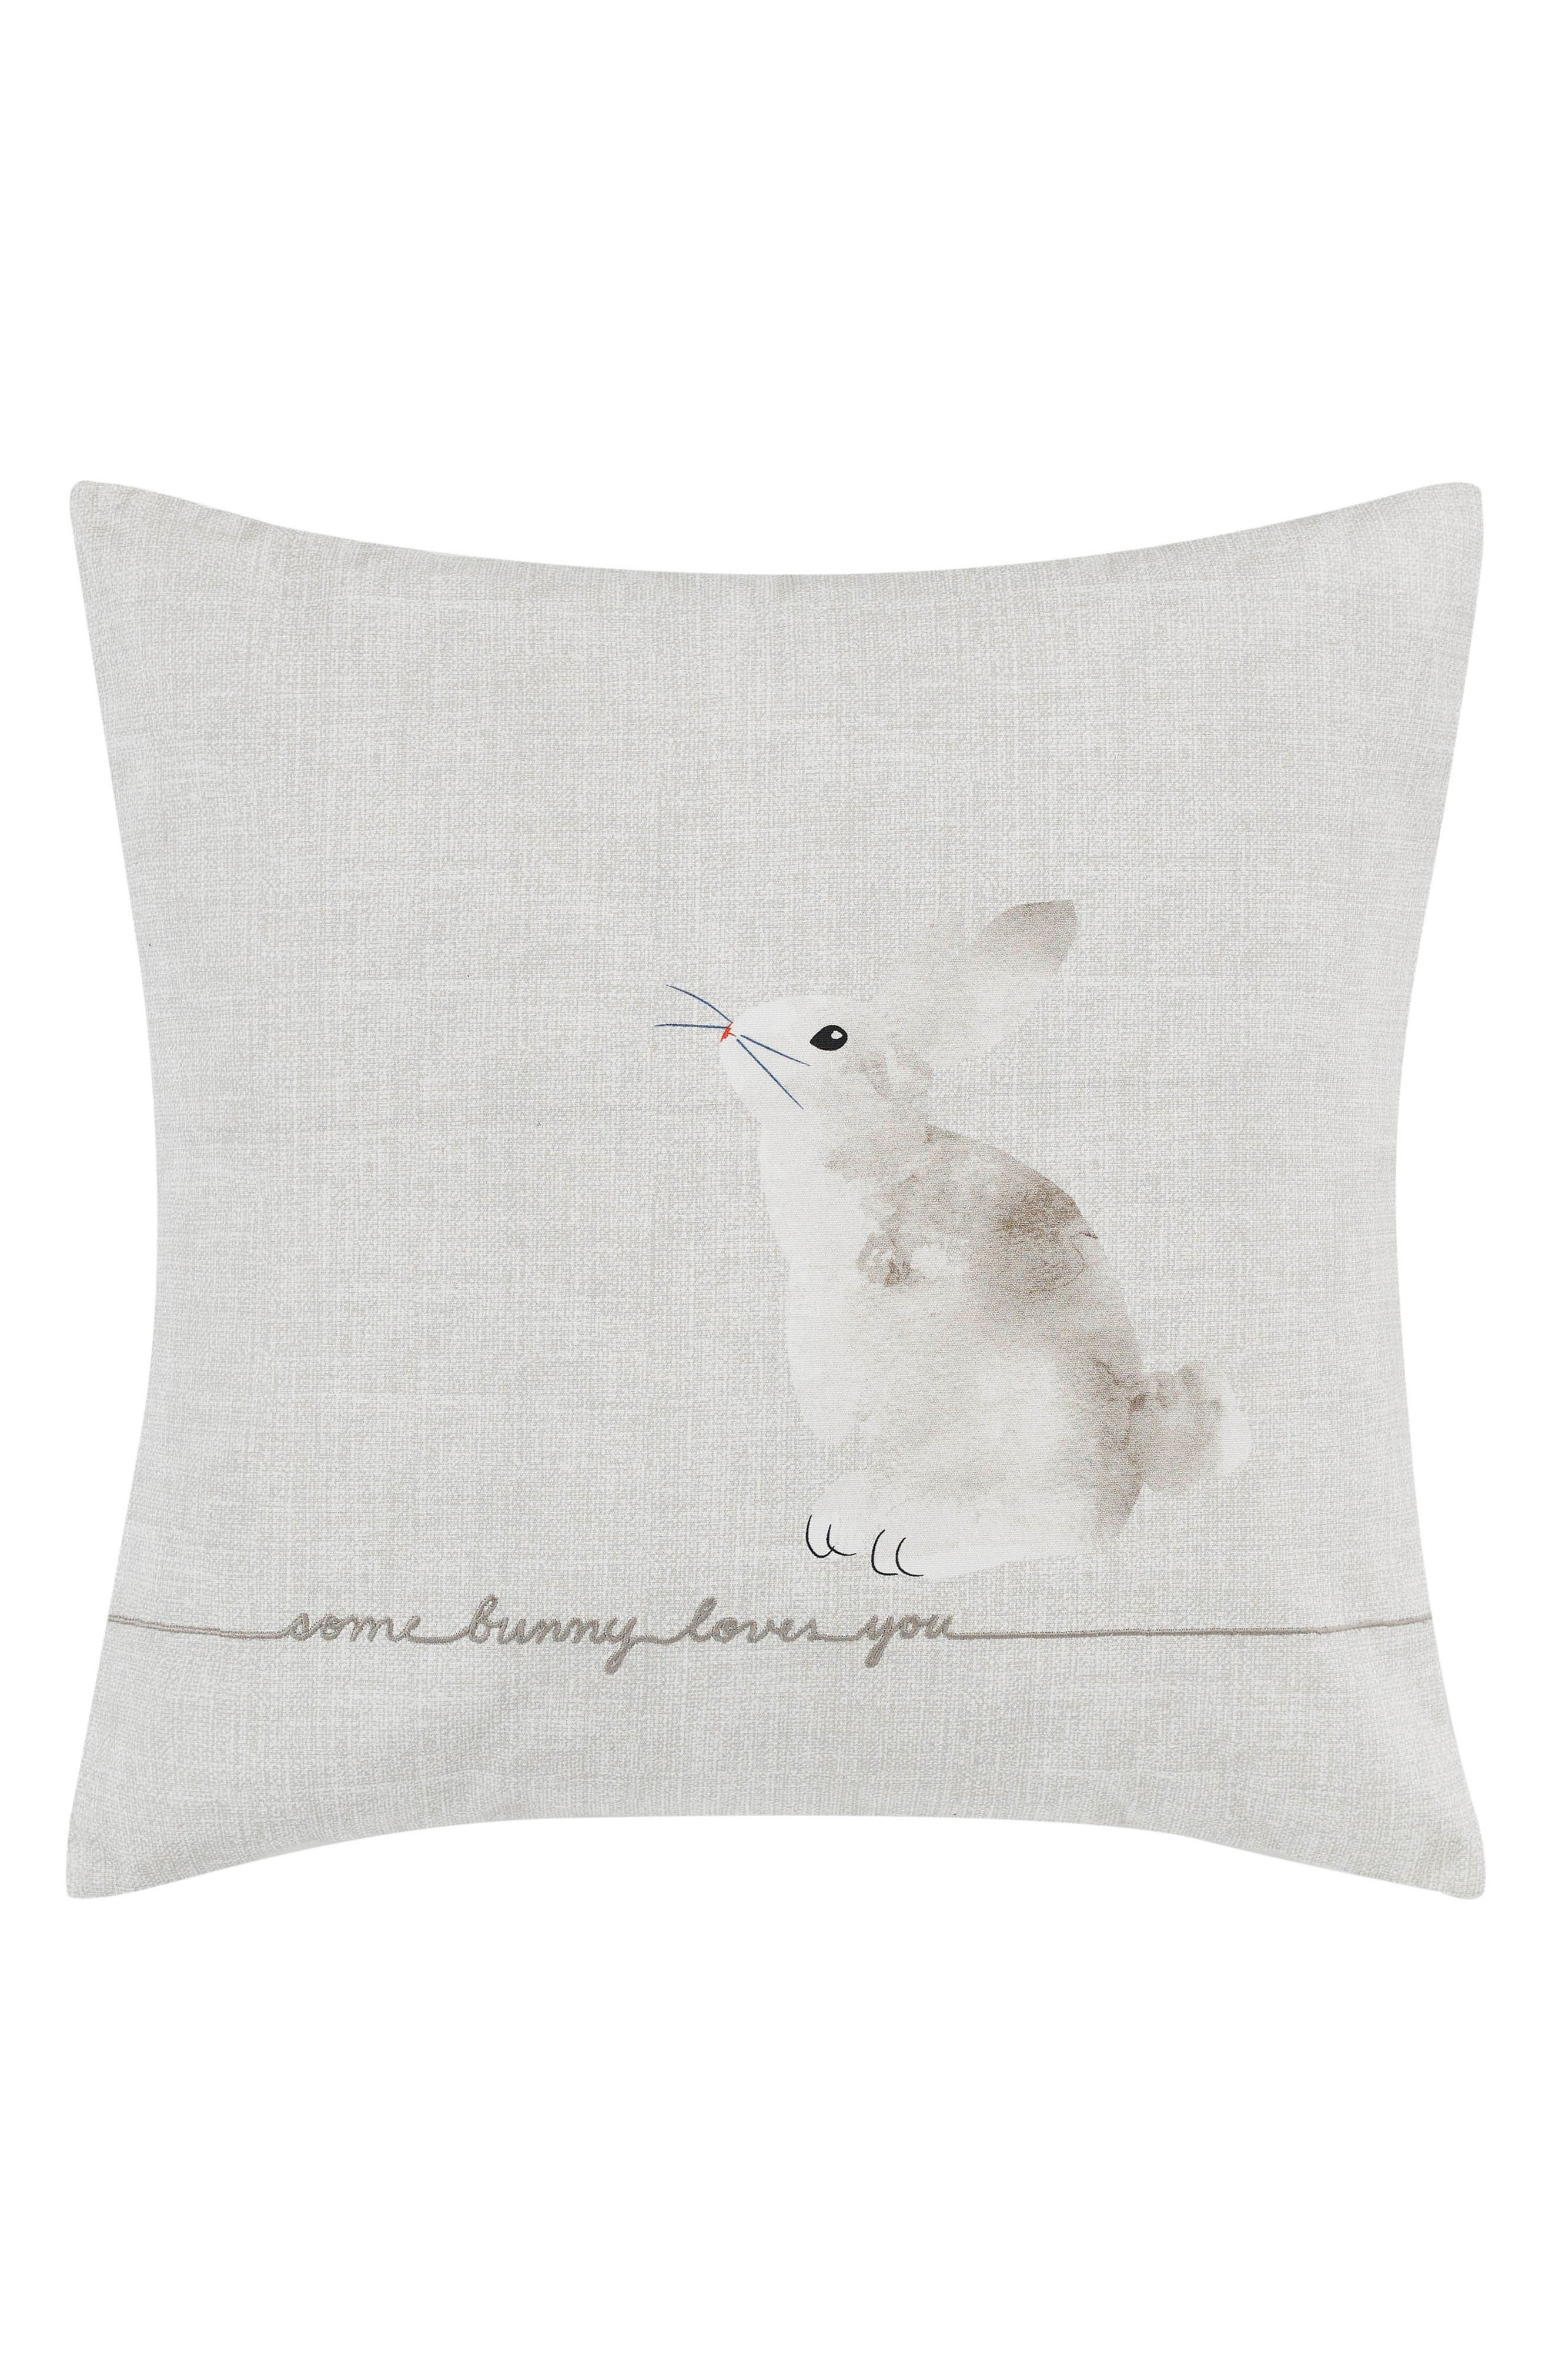 Claremont Some Bunny Loves You Accent Pillow,                         Main,                         color, Pastel Grey